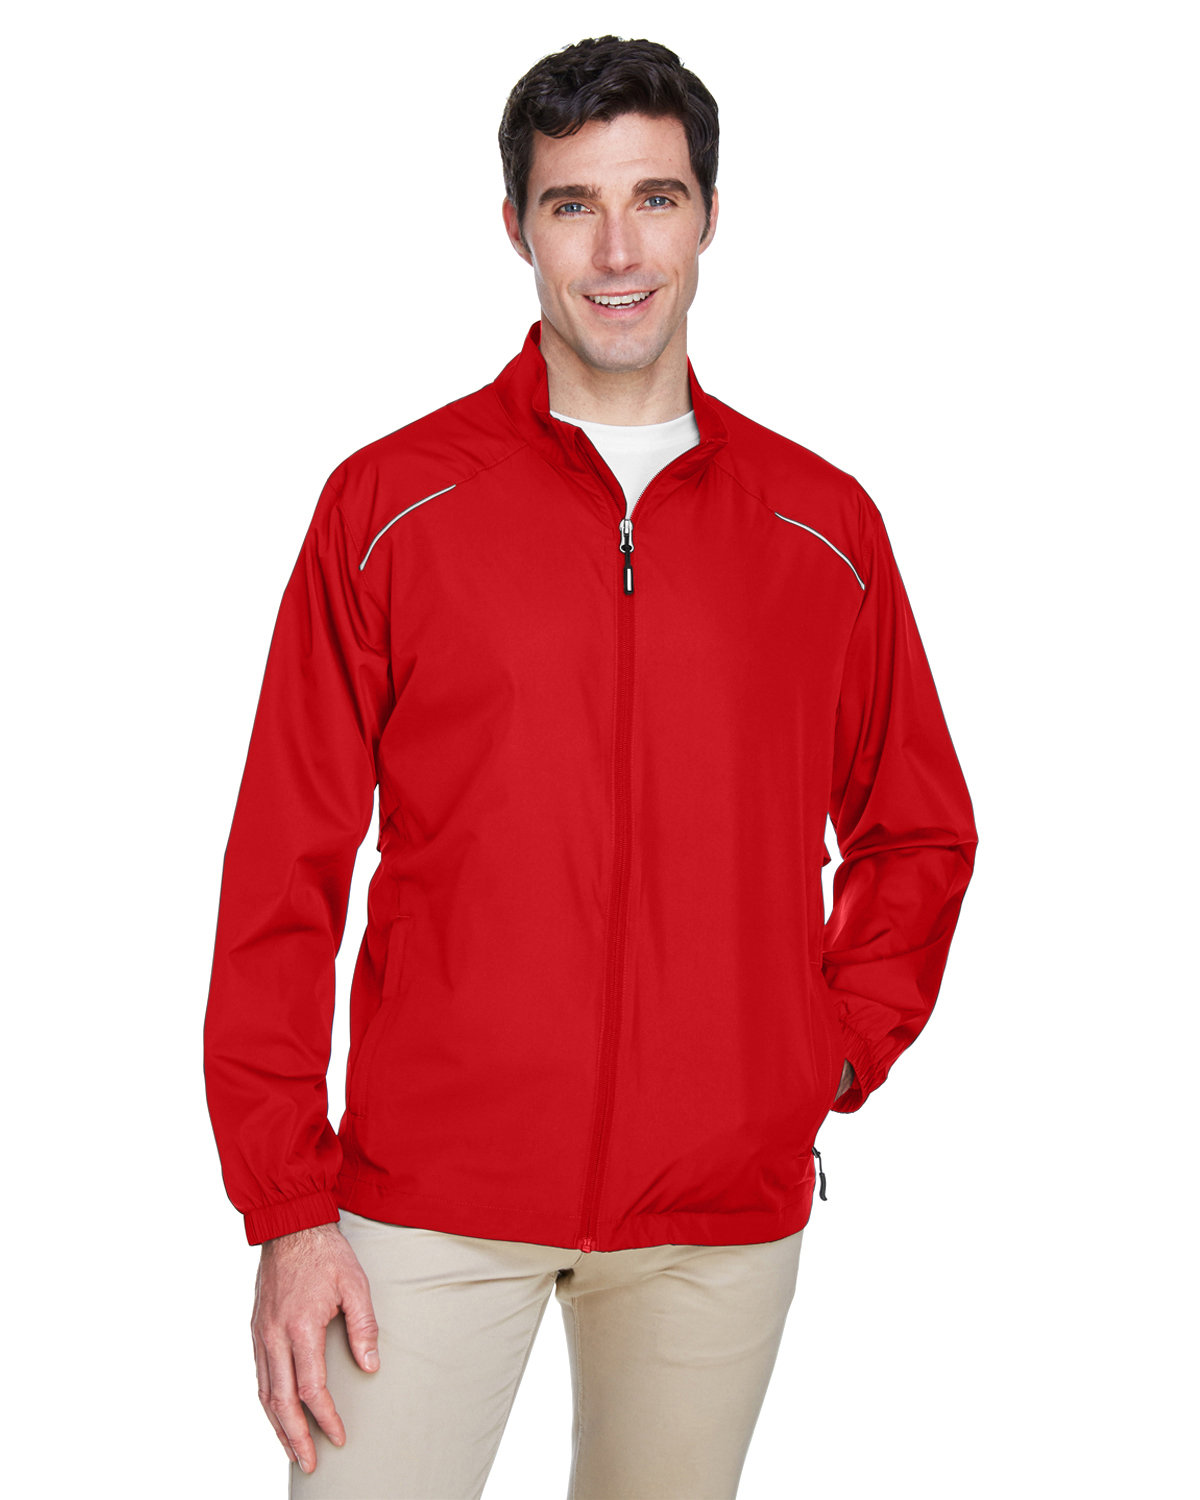 Core 365 Men's Tall Motivate Unlined Lightweight Jacket CLASSIC RED